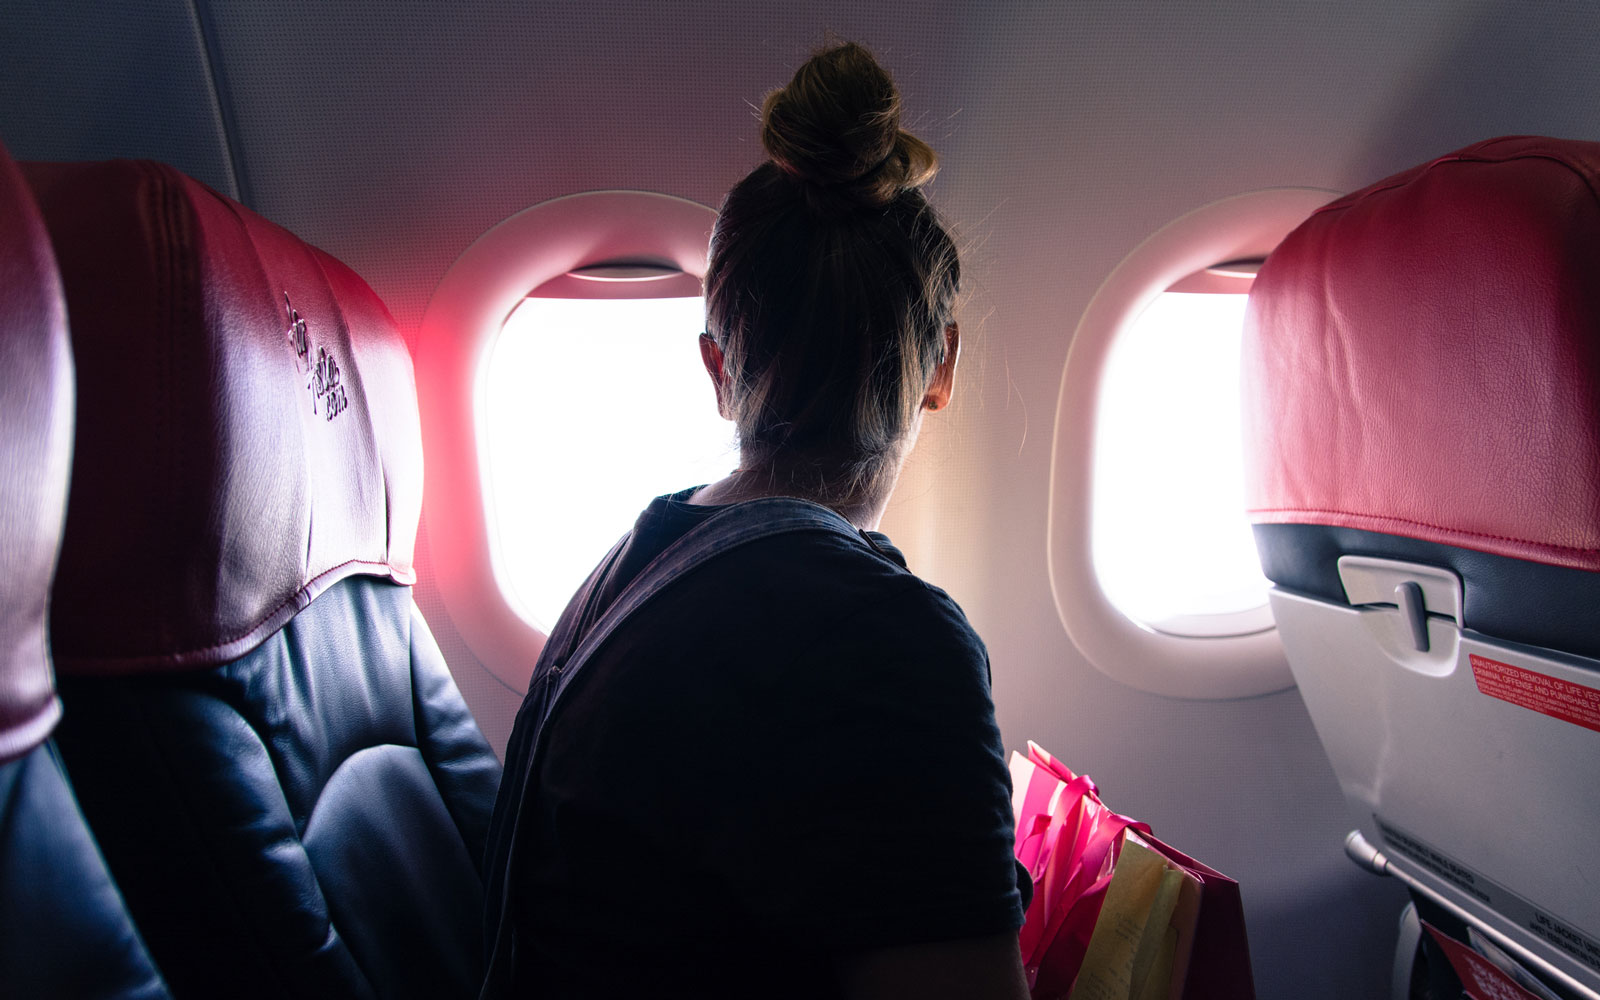 A new app provides info to nervous passengers to help calm them down.